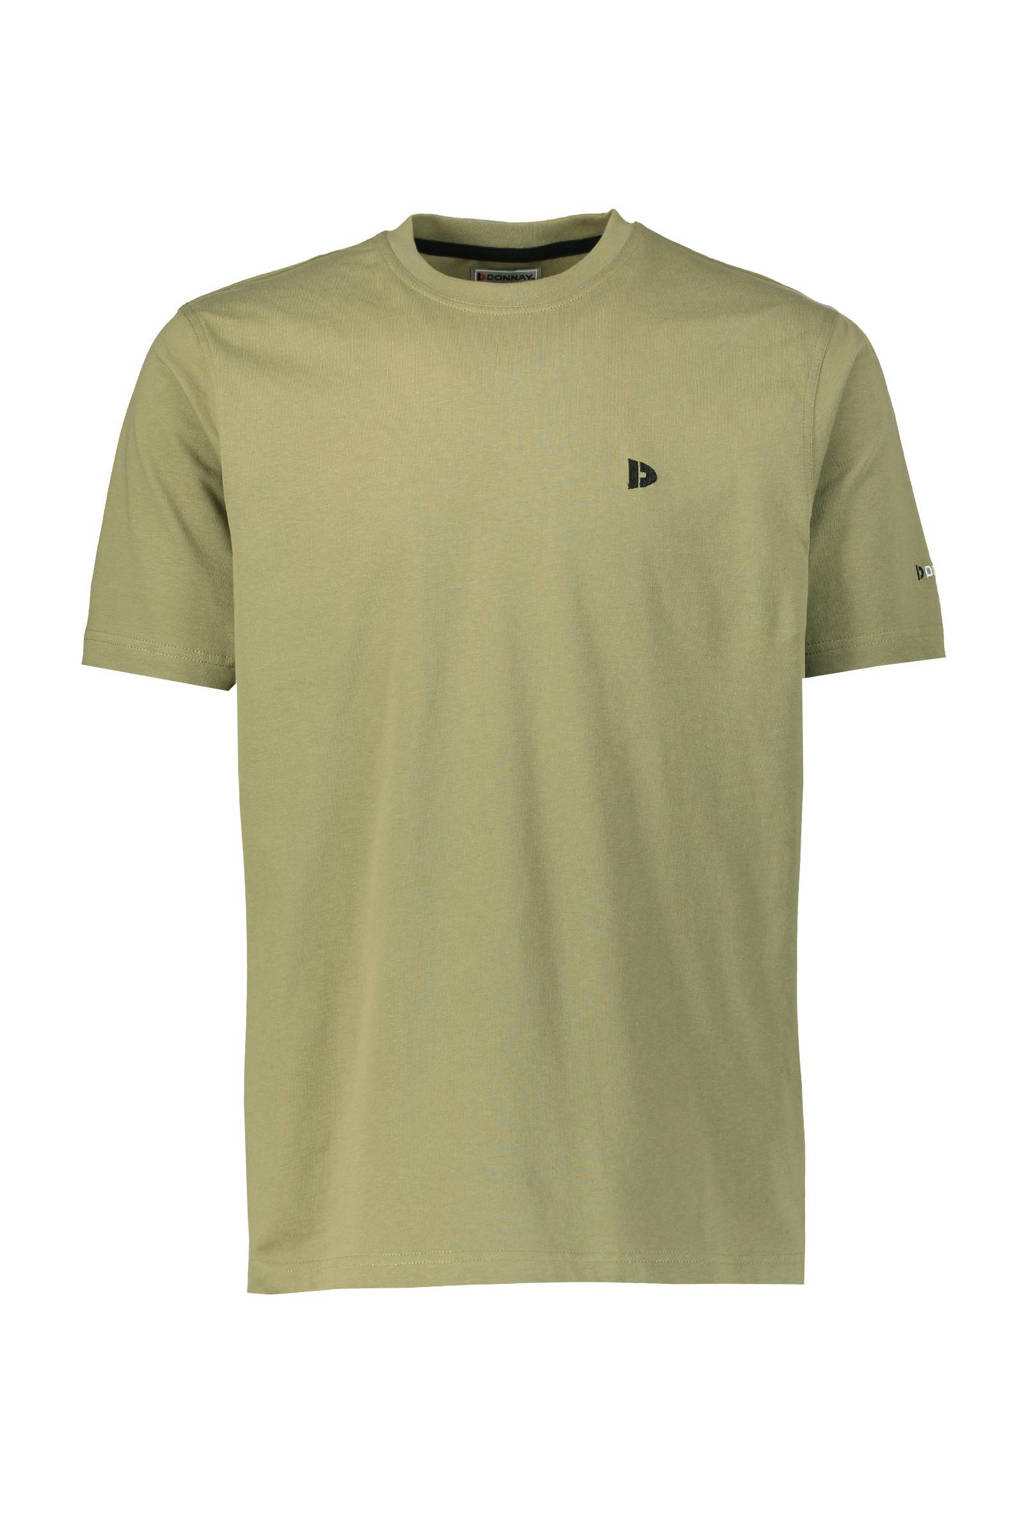 Donnay   sport T-shirt taupe, Taupe